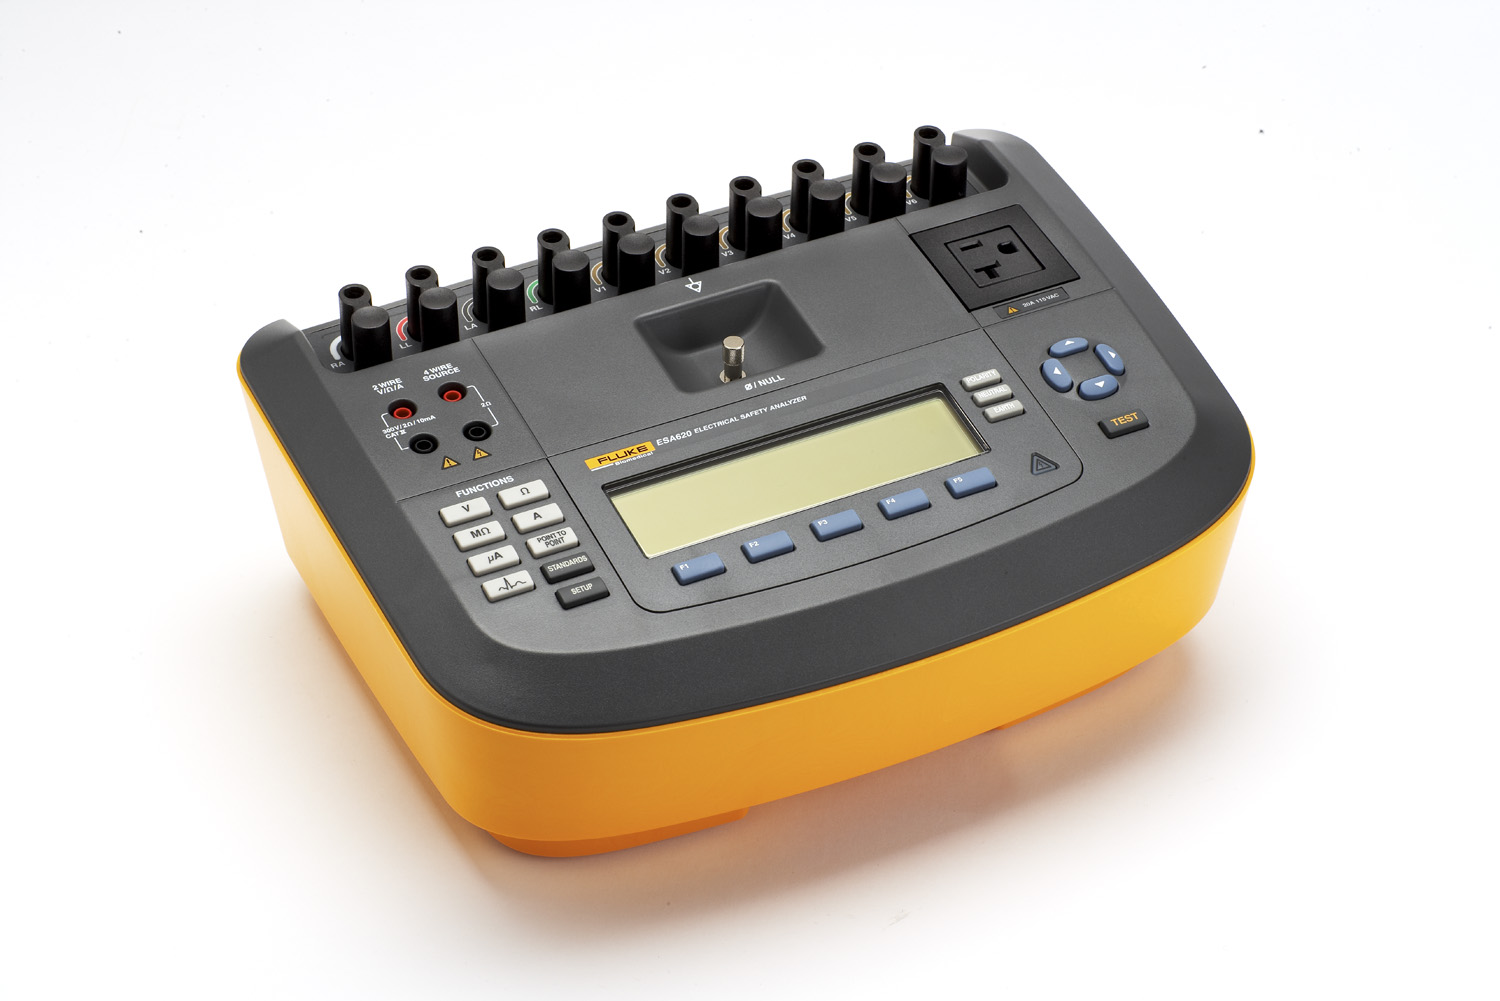 ESA620 Electrical Safety Analyzer